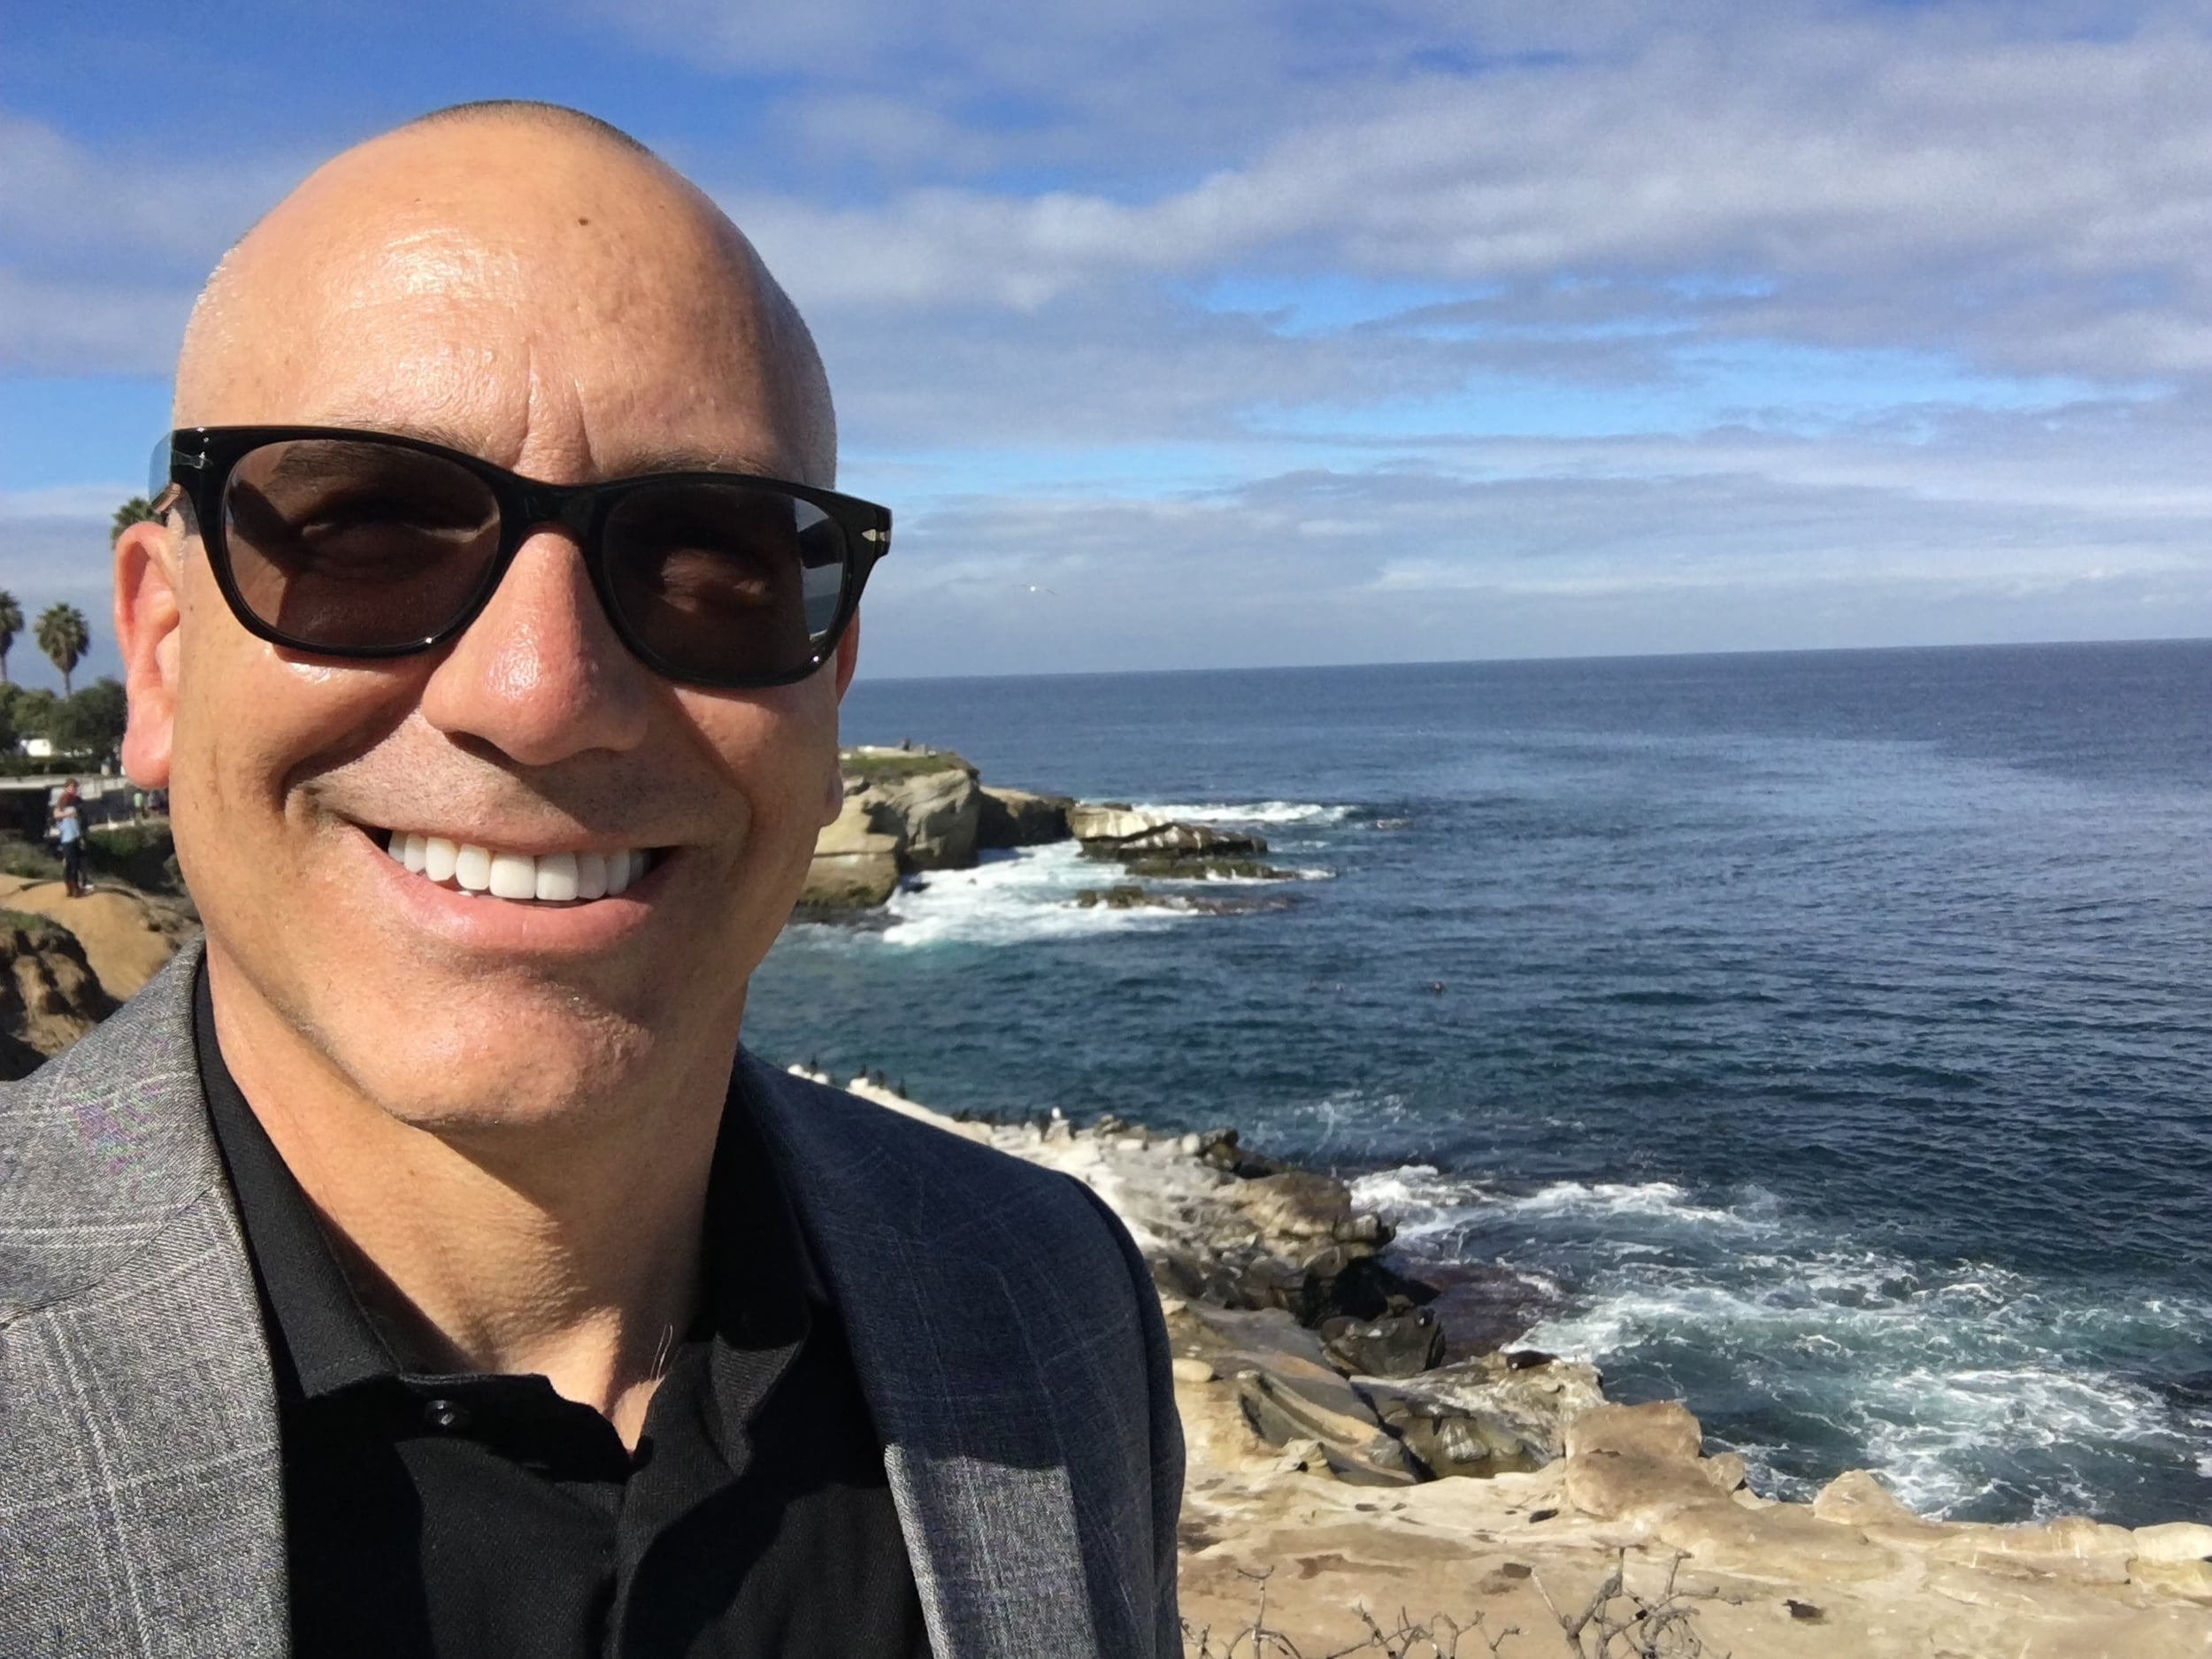 WORKING WITH LEADING EXPERTS ON LIFESTYLE MEDICINE IN SAN DIEGO.